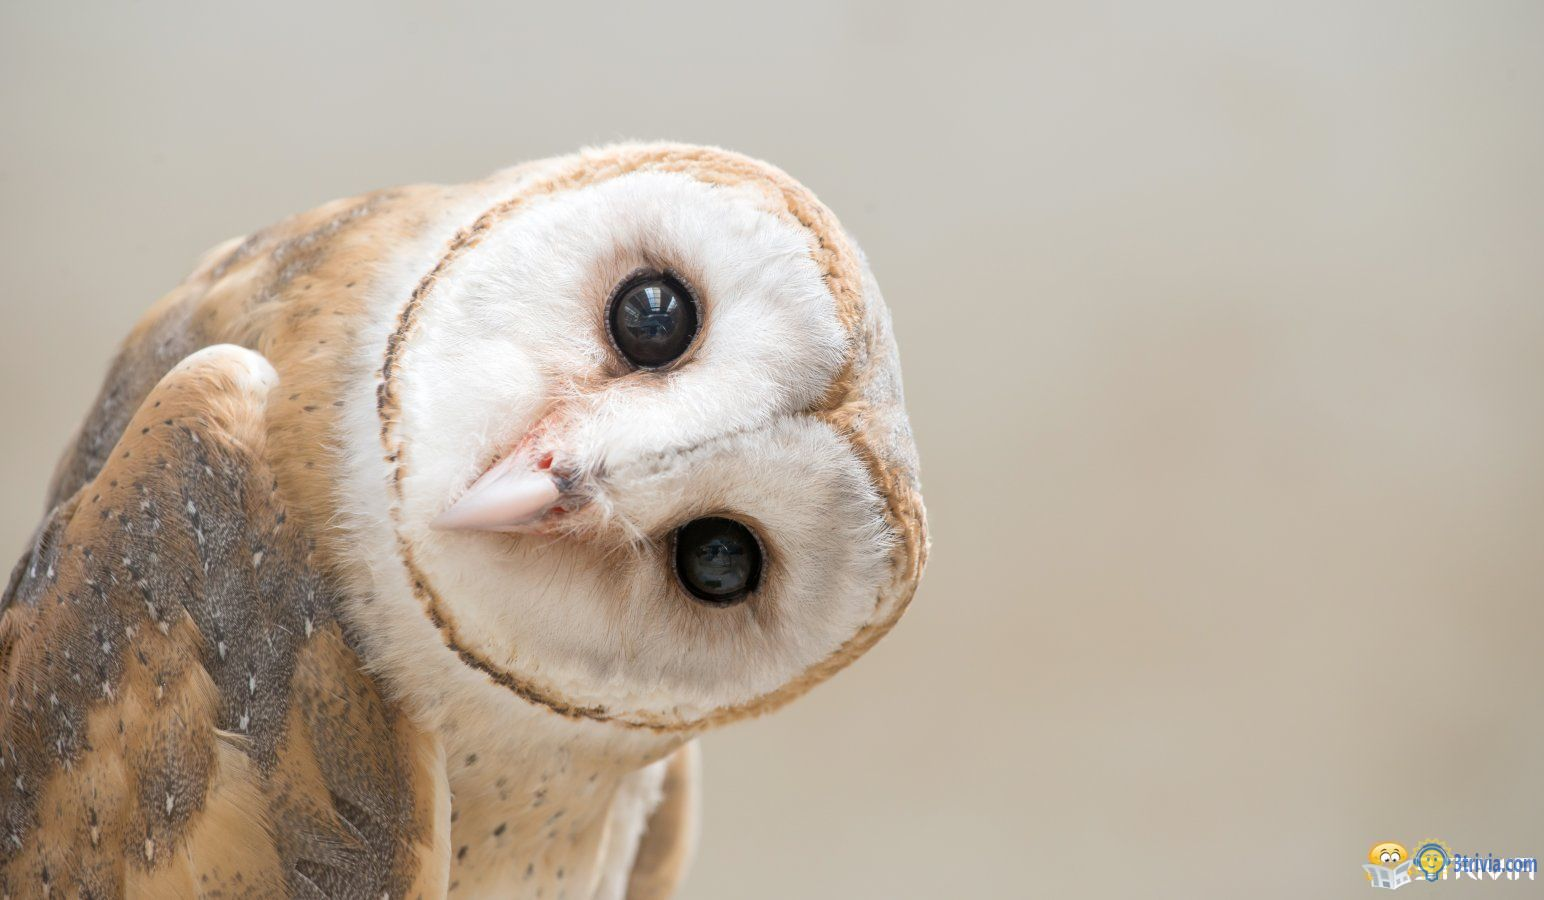 Owl Trivia:The owl's eyeballs couldn't move and they could only turn their heads.